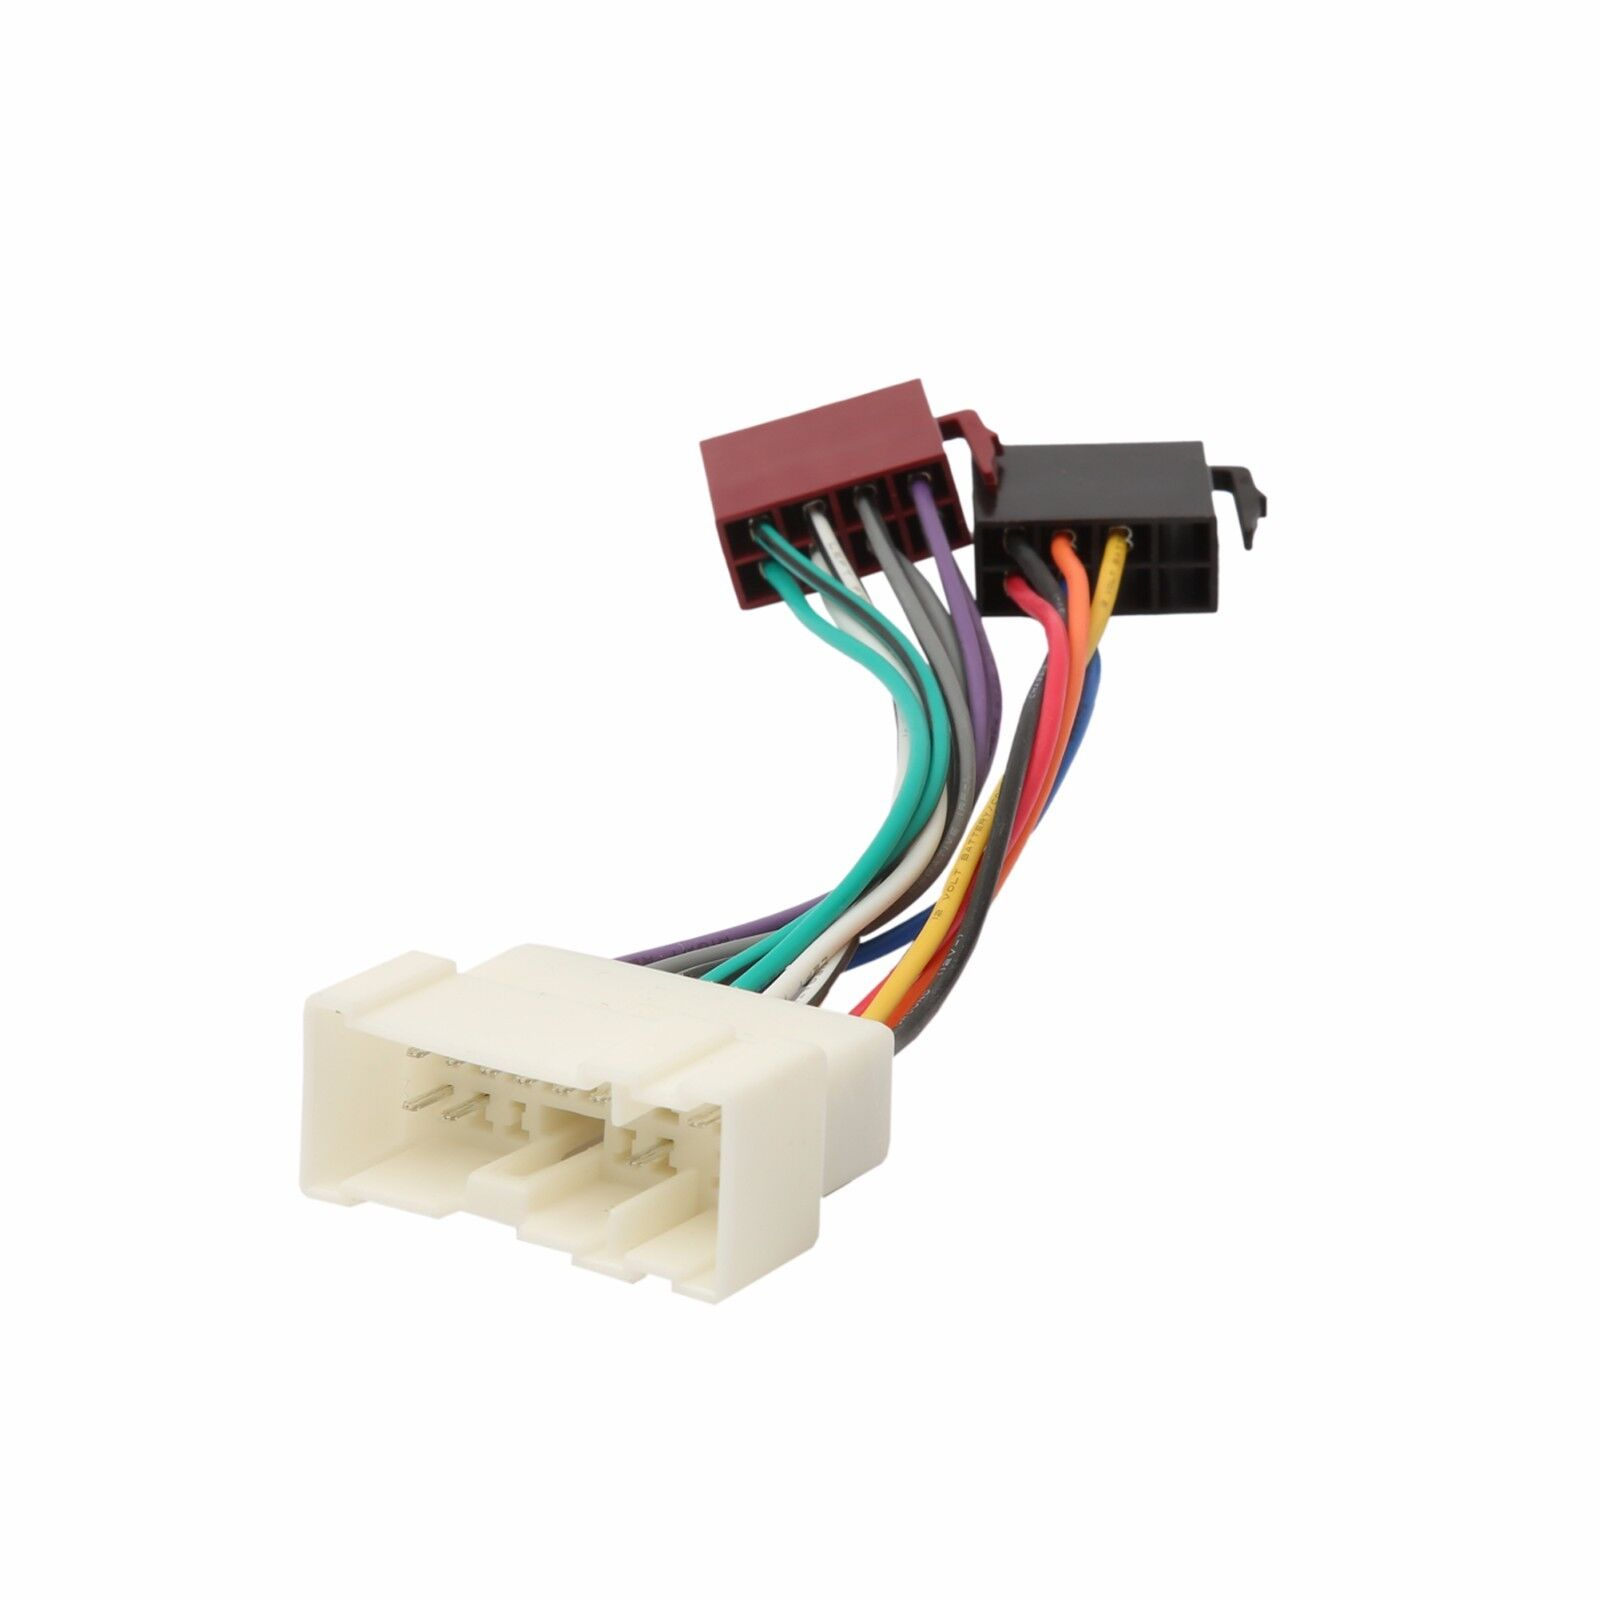 2000 Nissan Wiring Harness And Connectors Data Diagram Today Ducati Monster Iso Radio Stereo Adapter Connector For John Deere